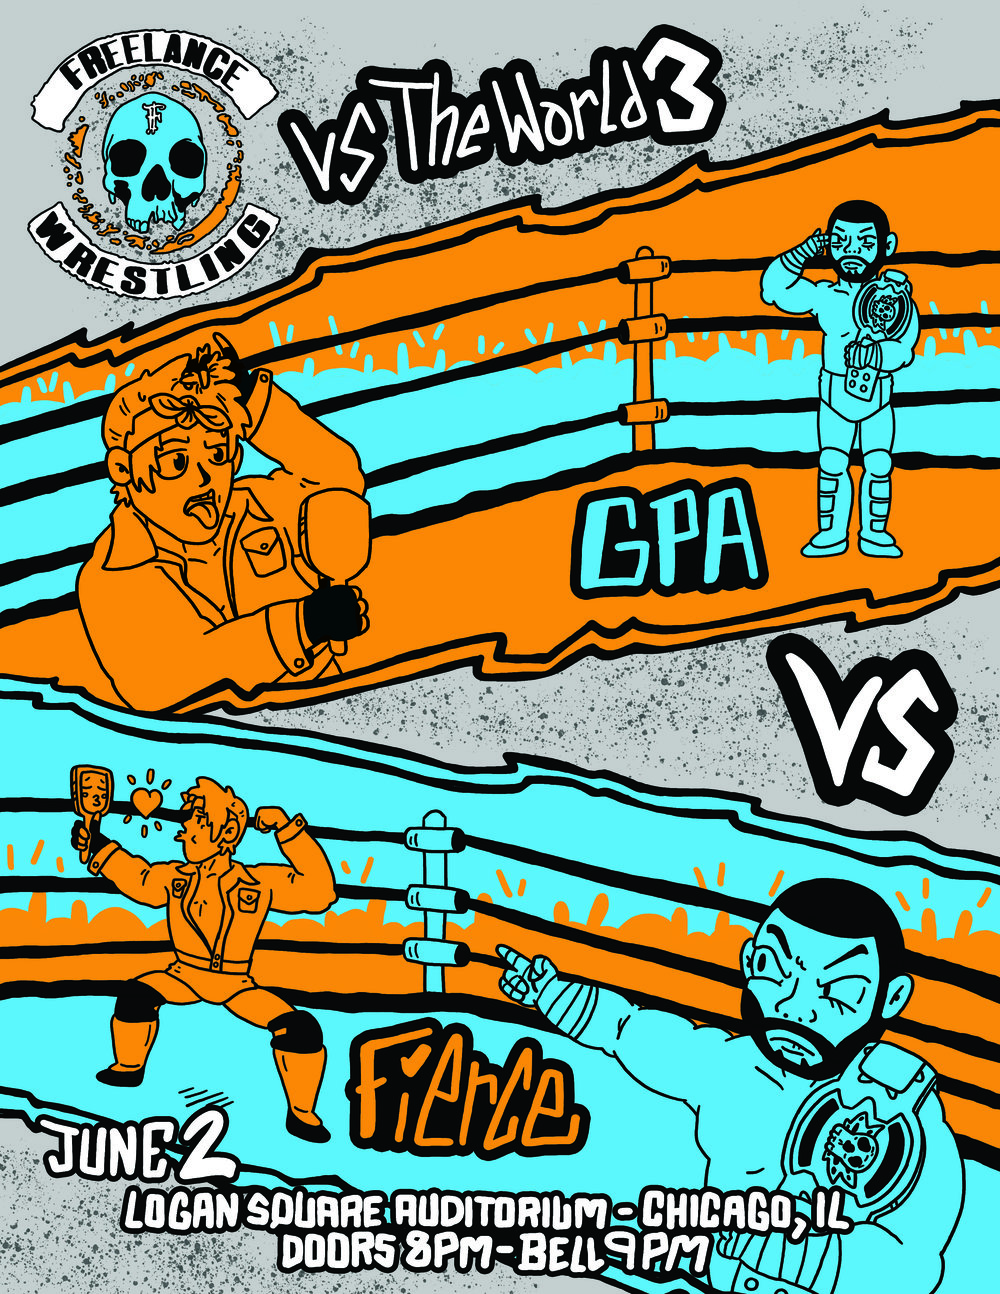 Freelance Wrestling vs the World 3 Championship Poster.jpg